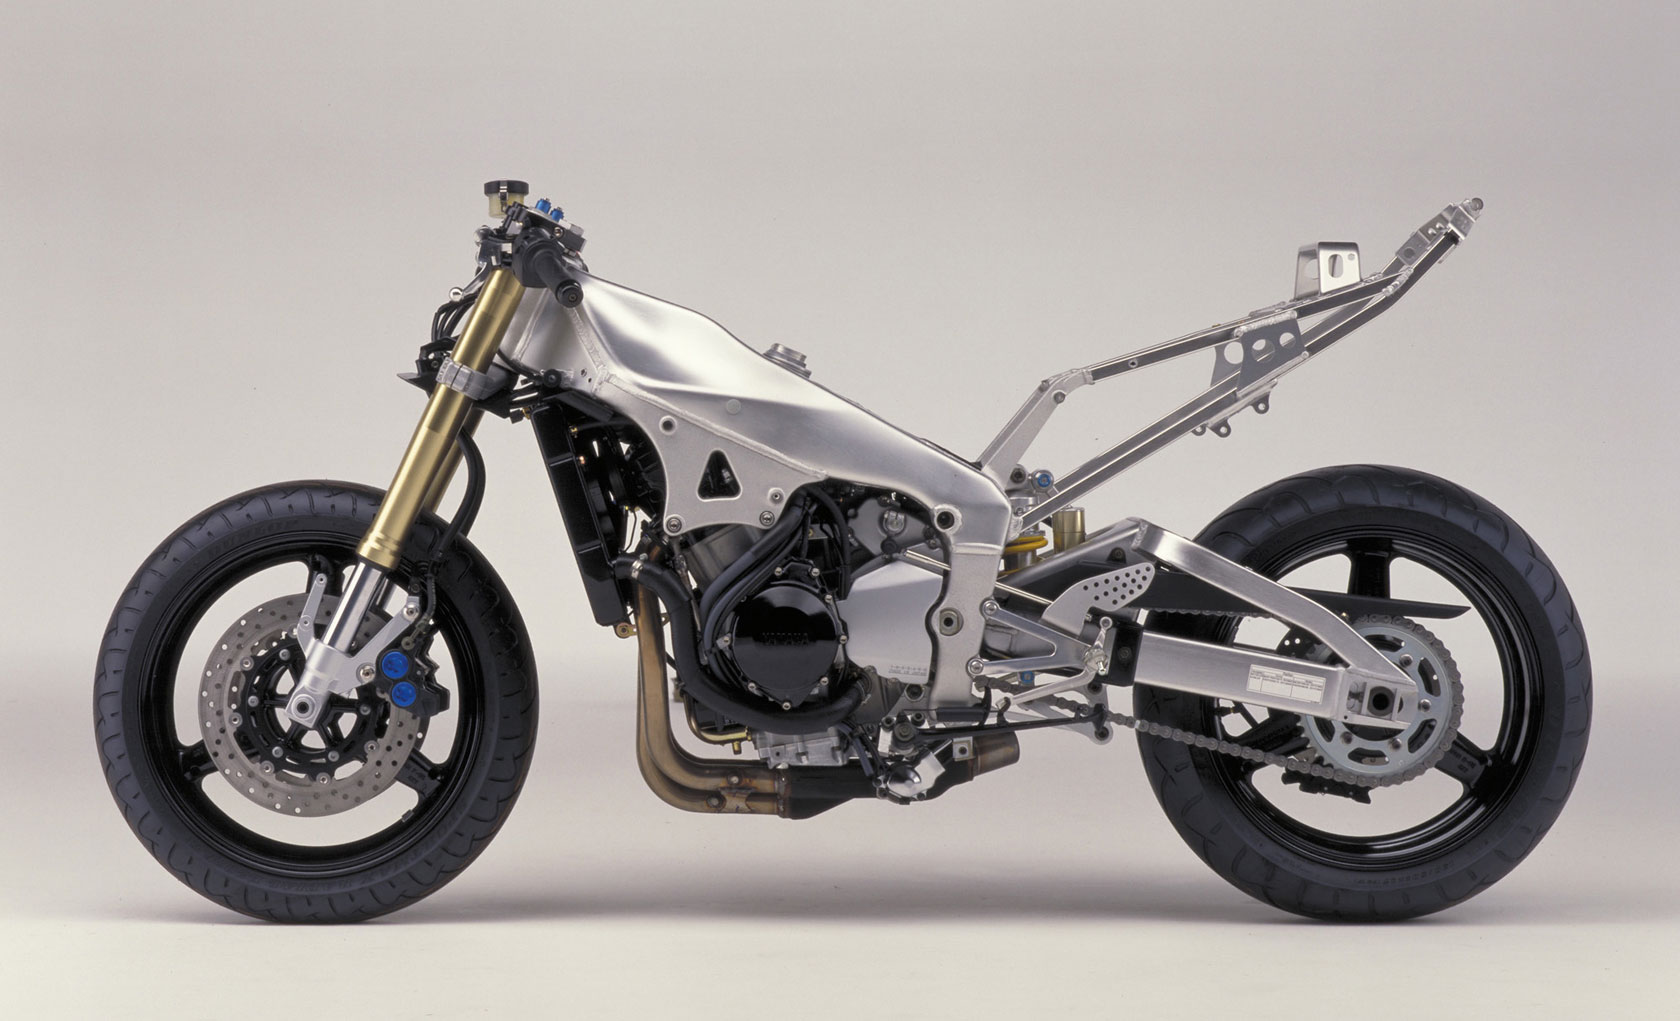 The fantasy build what i d do if i could yamaha r1 for 01 yamaha r1